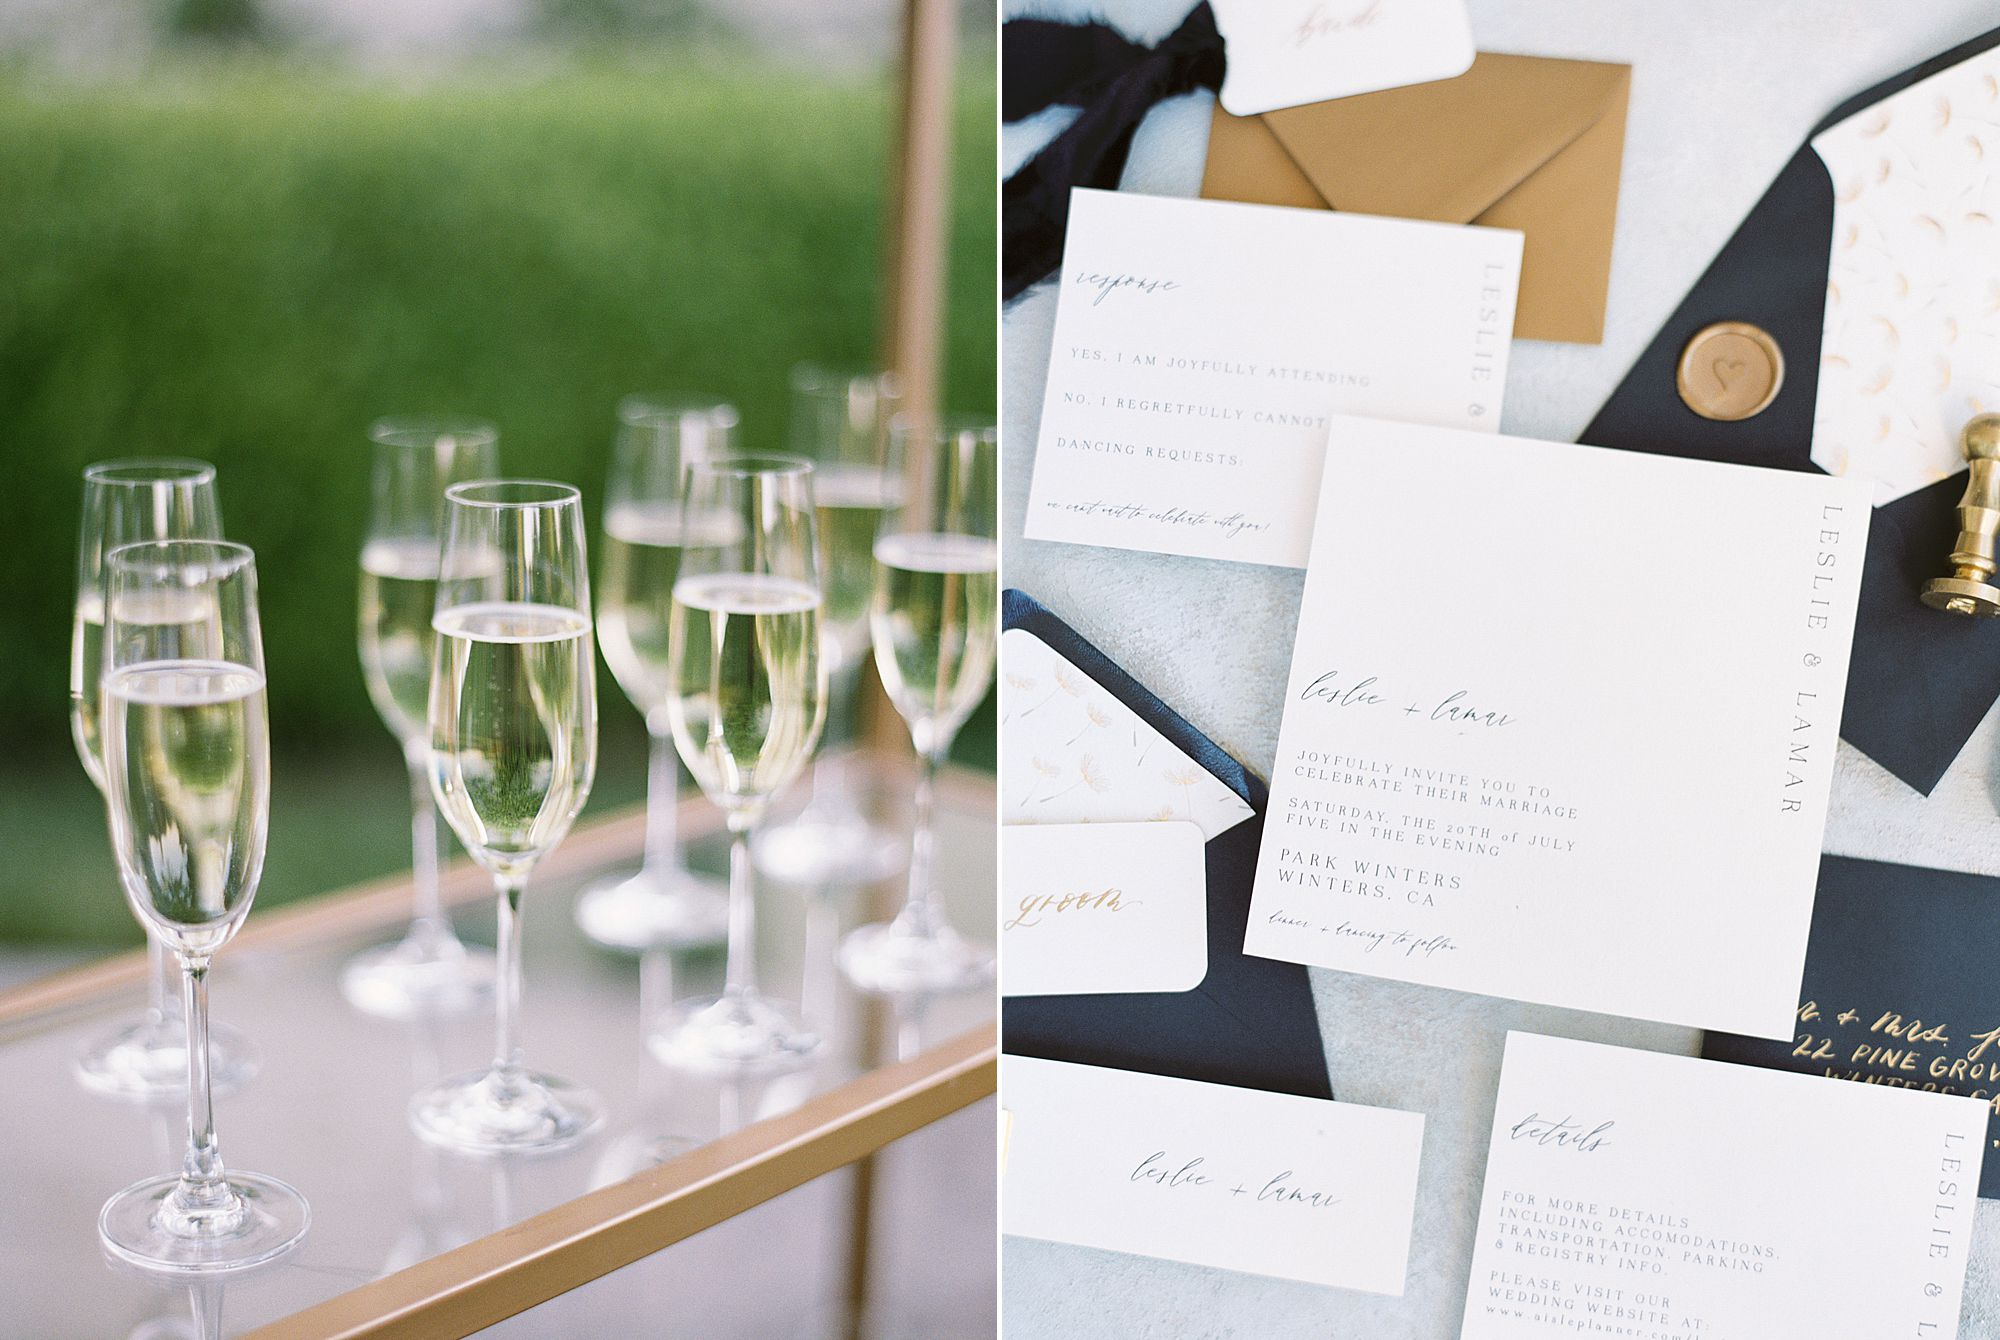 Park Winters Micro-Wedding Inspiration on Style Me Pretty - Stephanie Teague Events - Ashley Baumgartner - Park Winters Wedding - Black Tie Wedding - Micro-Wedding Sacramento Photographer_0037.jpg